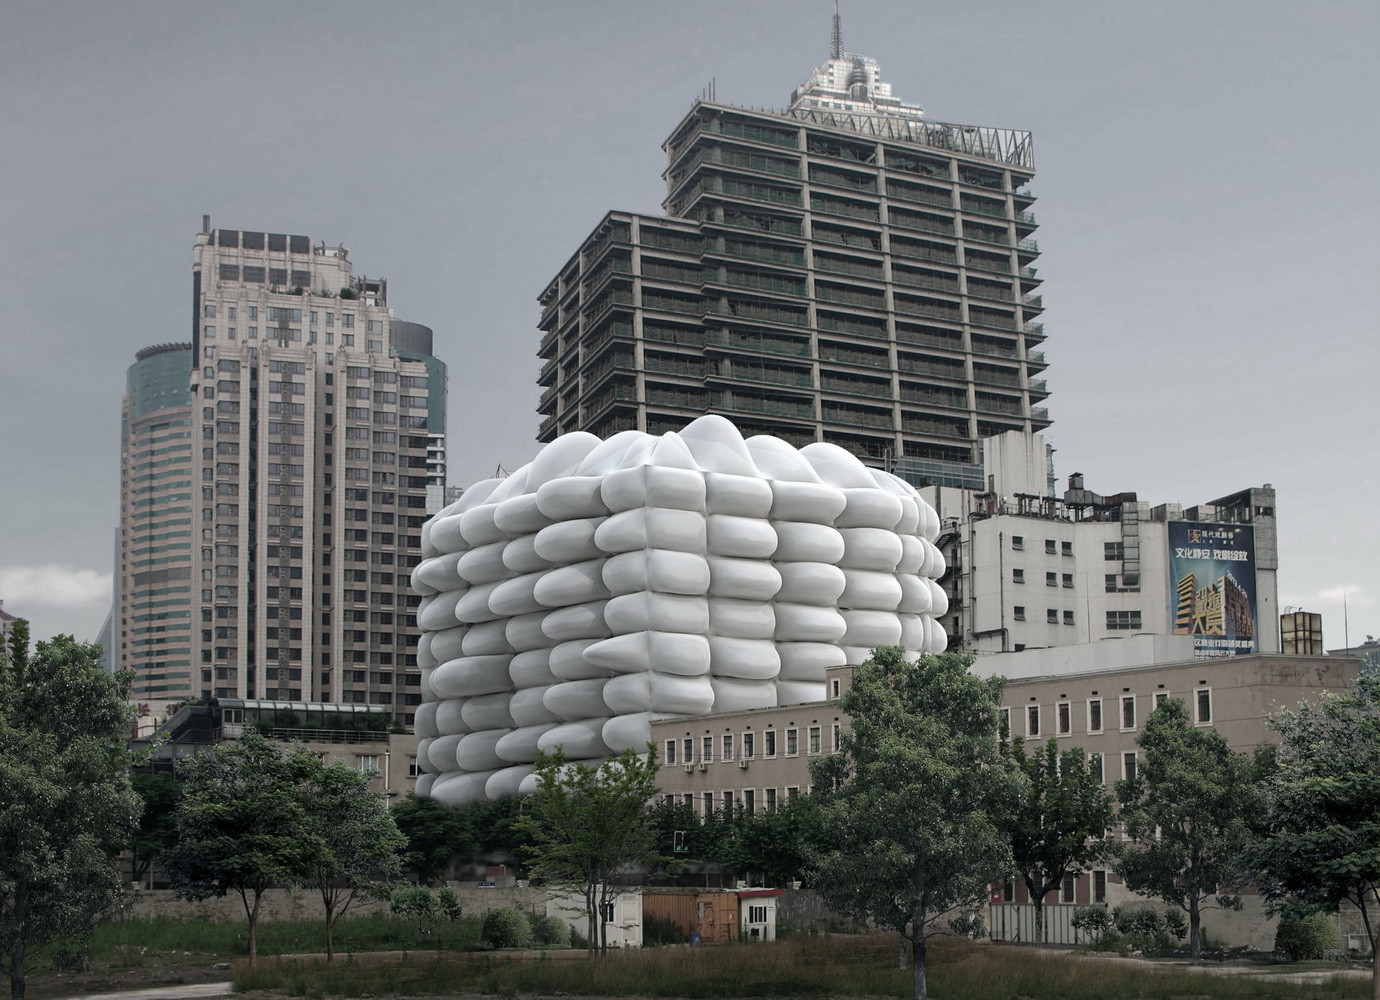 Bubble Building / 3GATTI Architecture Studio, Skyline View. Image Courtesy of 3GATTI